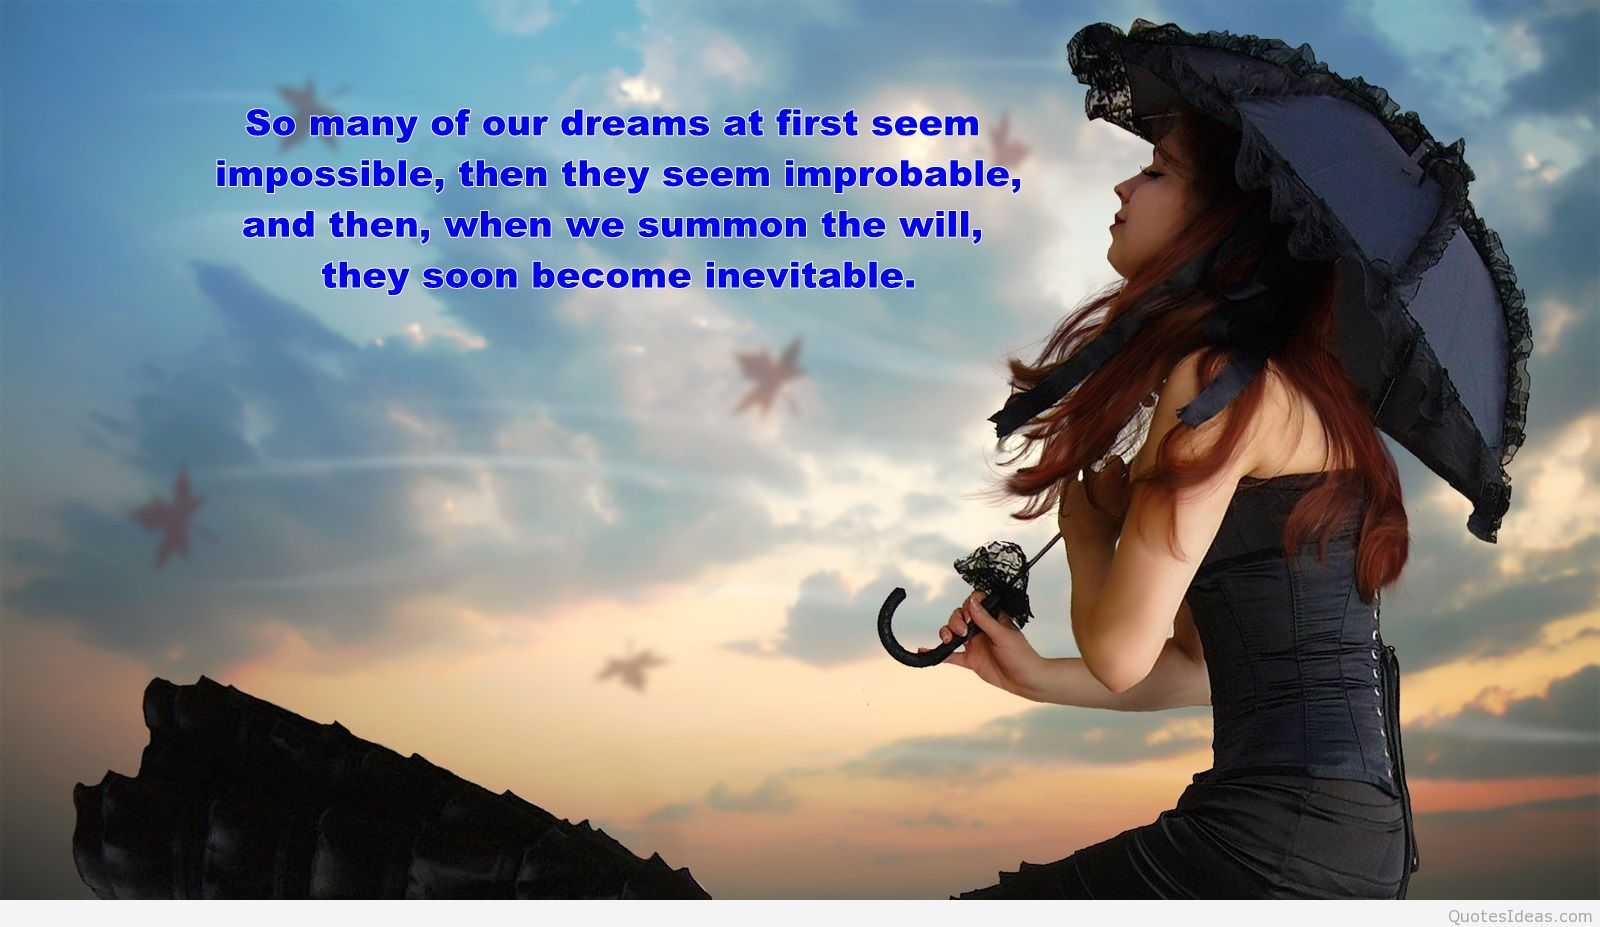 Dream Quote Wallpaper With A Girl - Girl With Dreams Quotes - HD Wallpaper